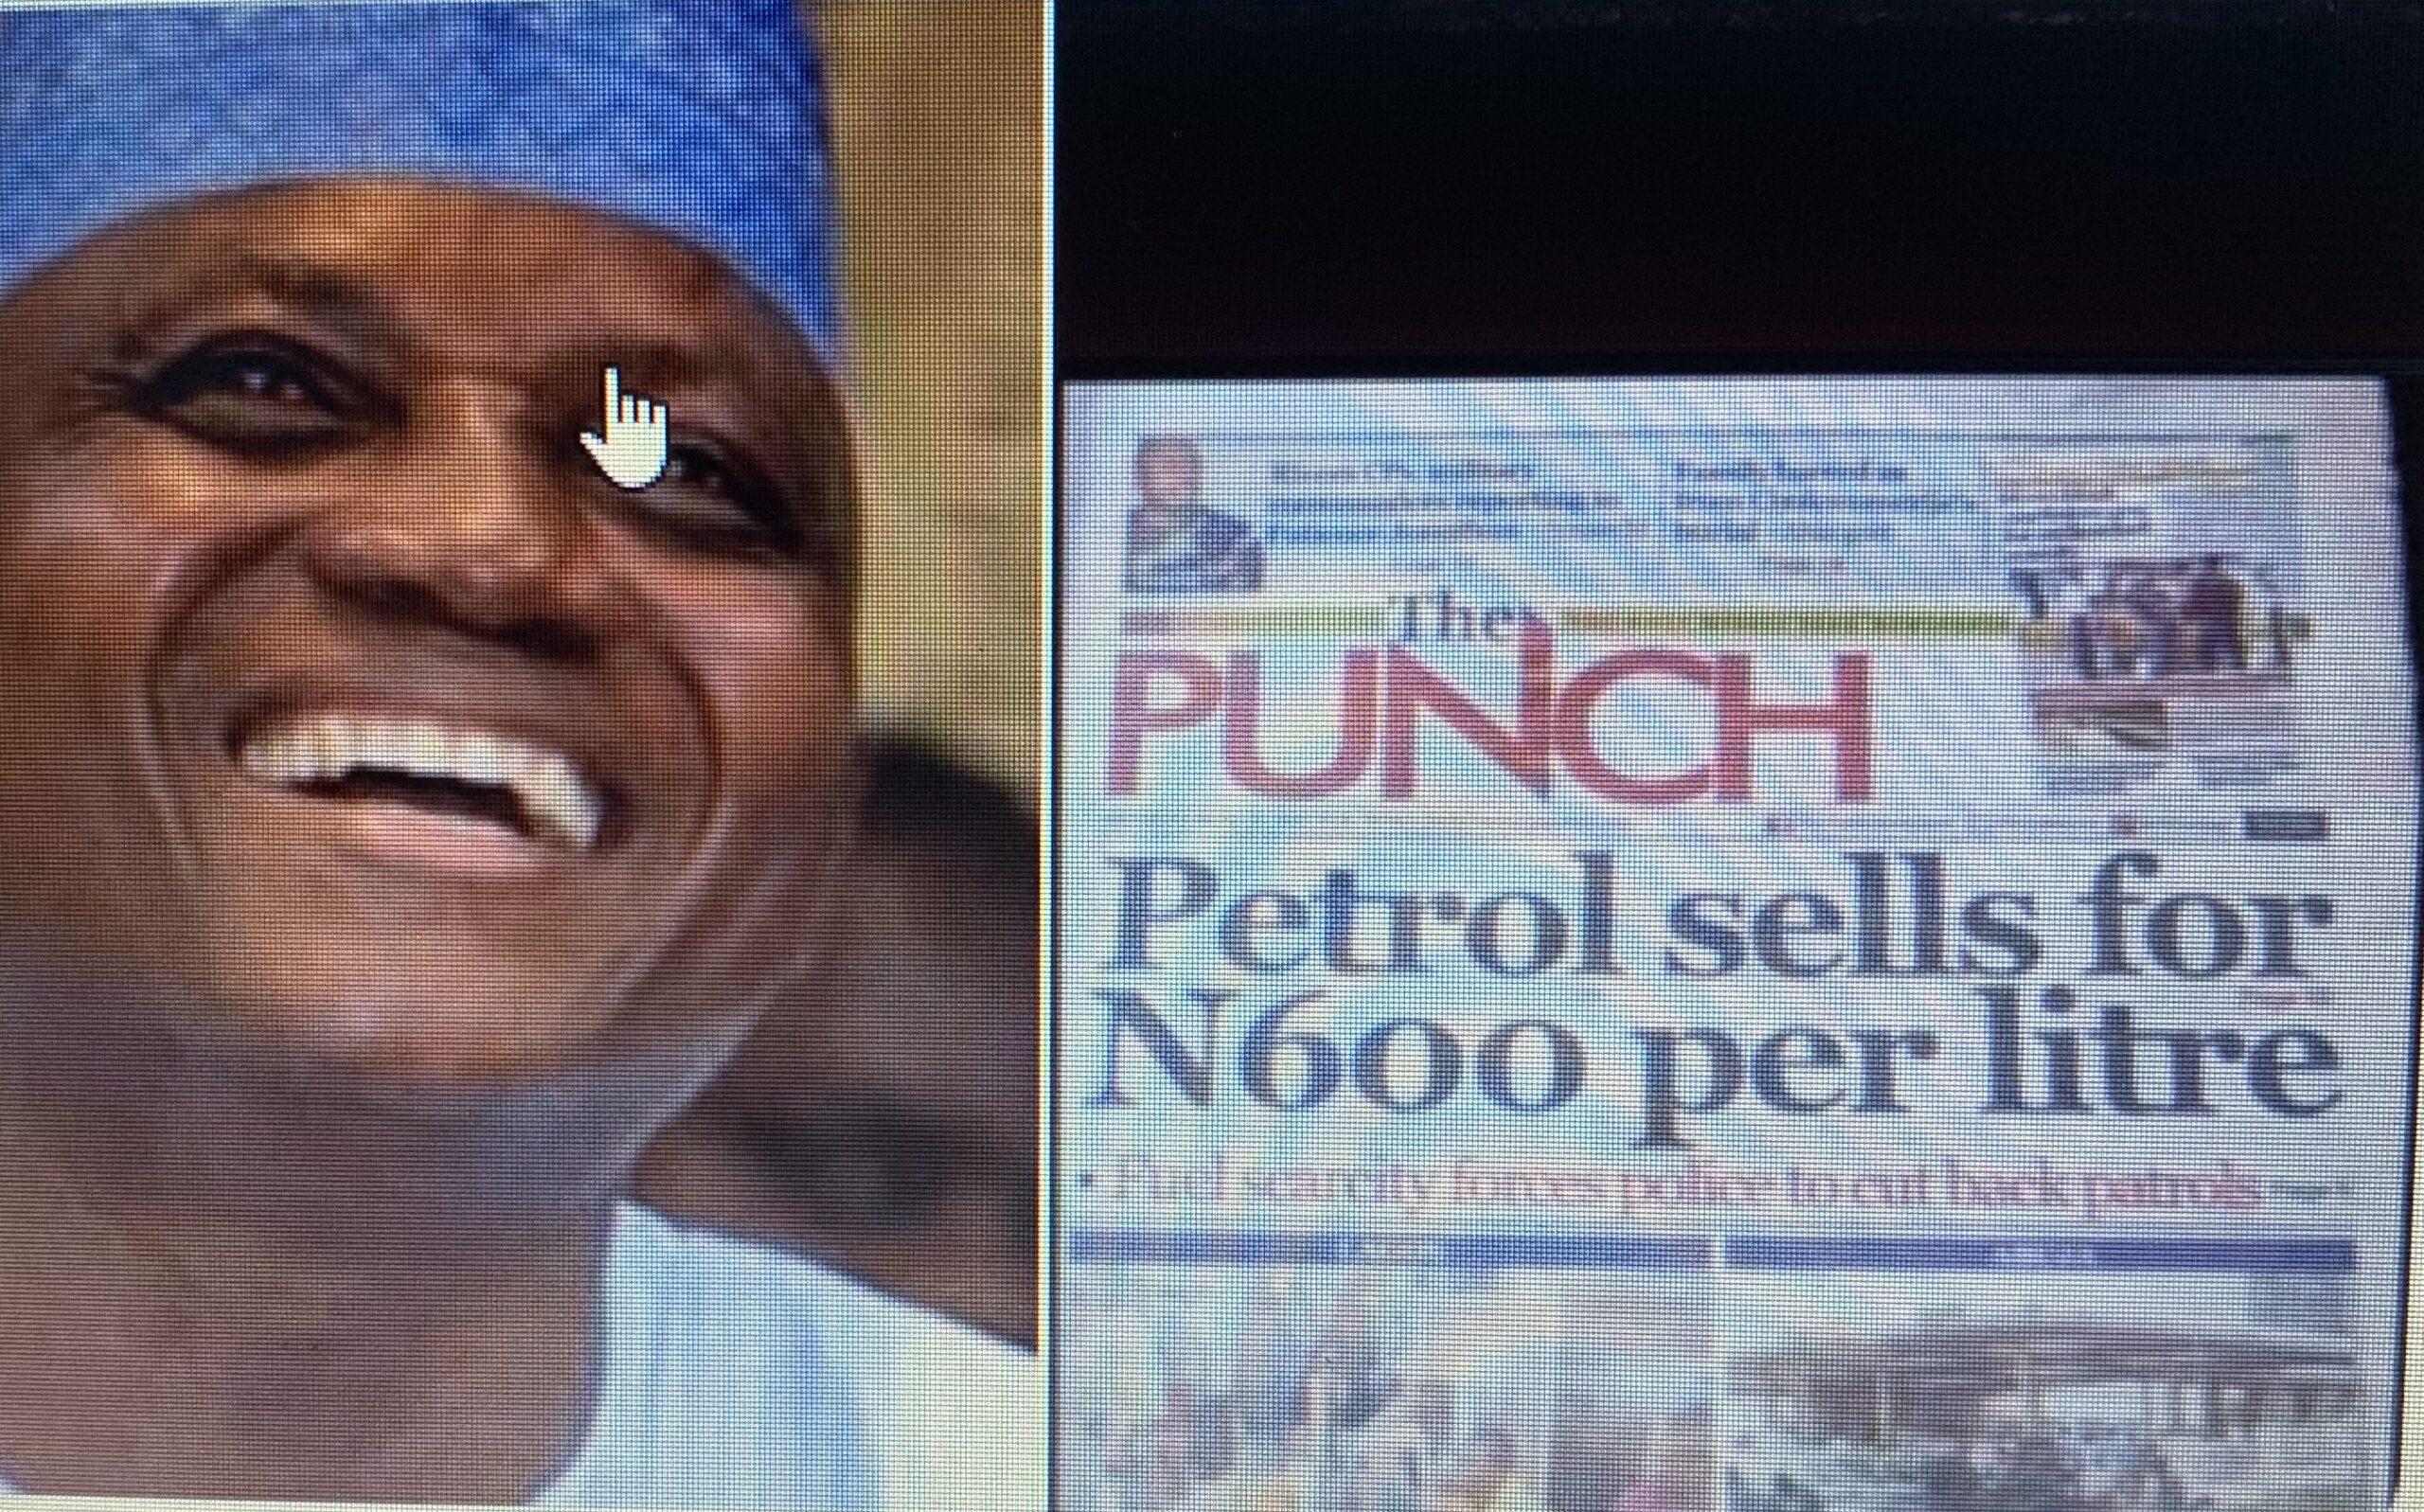 Nigerians Roast Garba Shehu For Saying Fuel Sold For N600 Under PDP